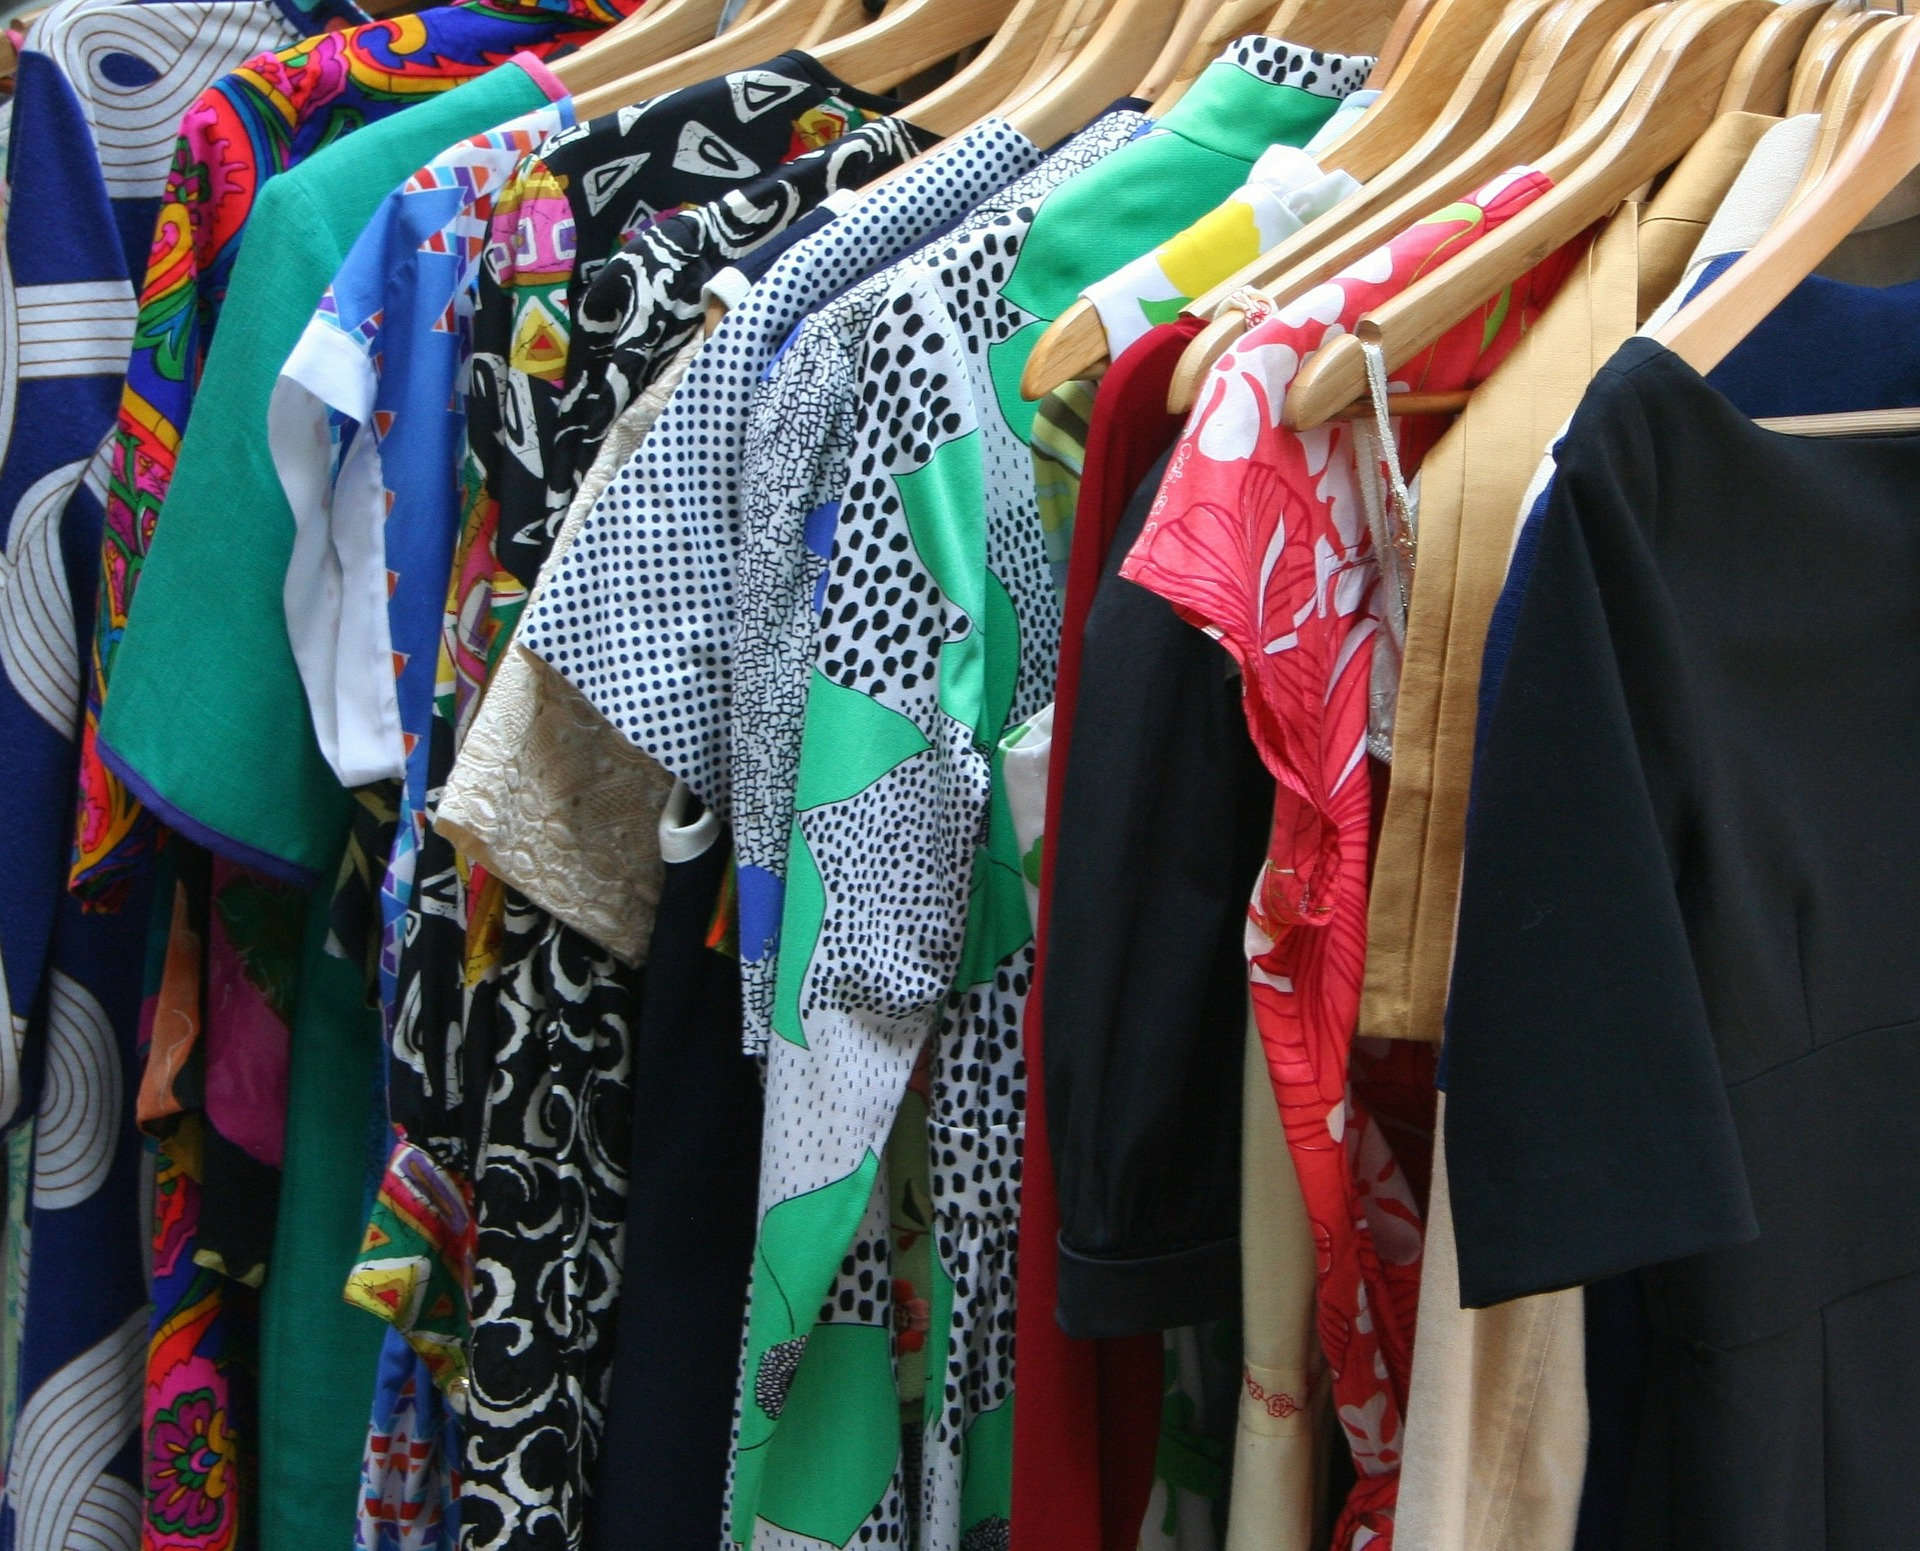 It's Spring! Time to clean out your bedroom closet!